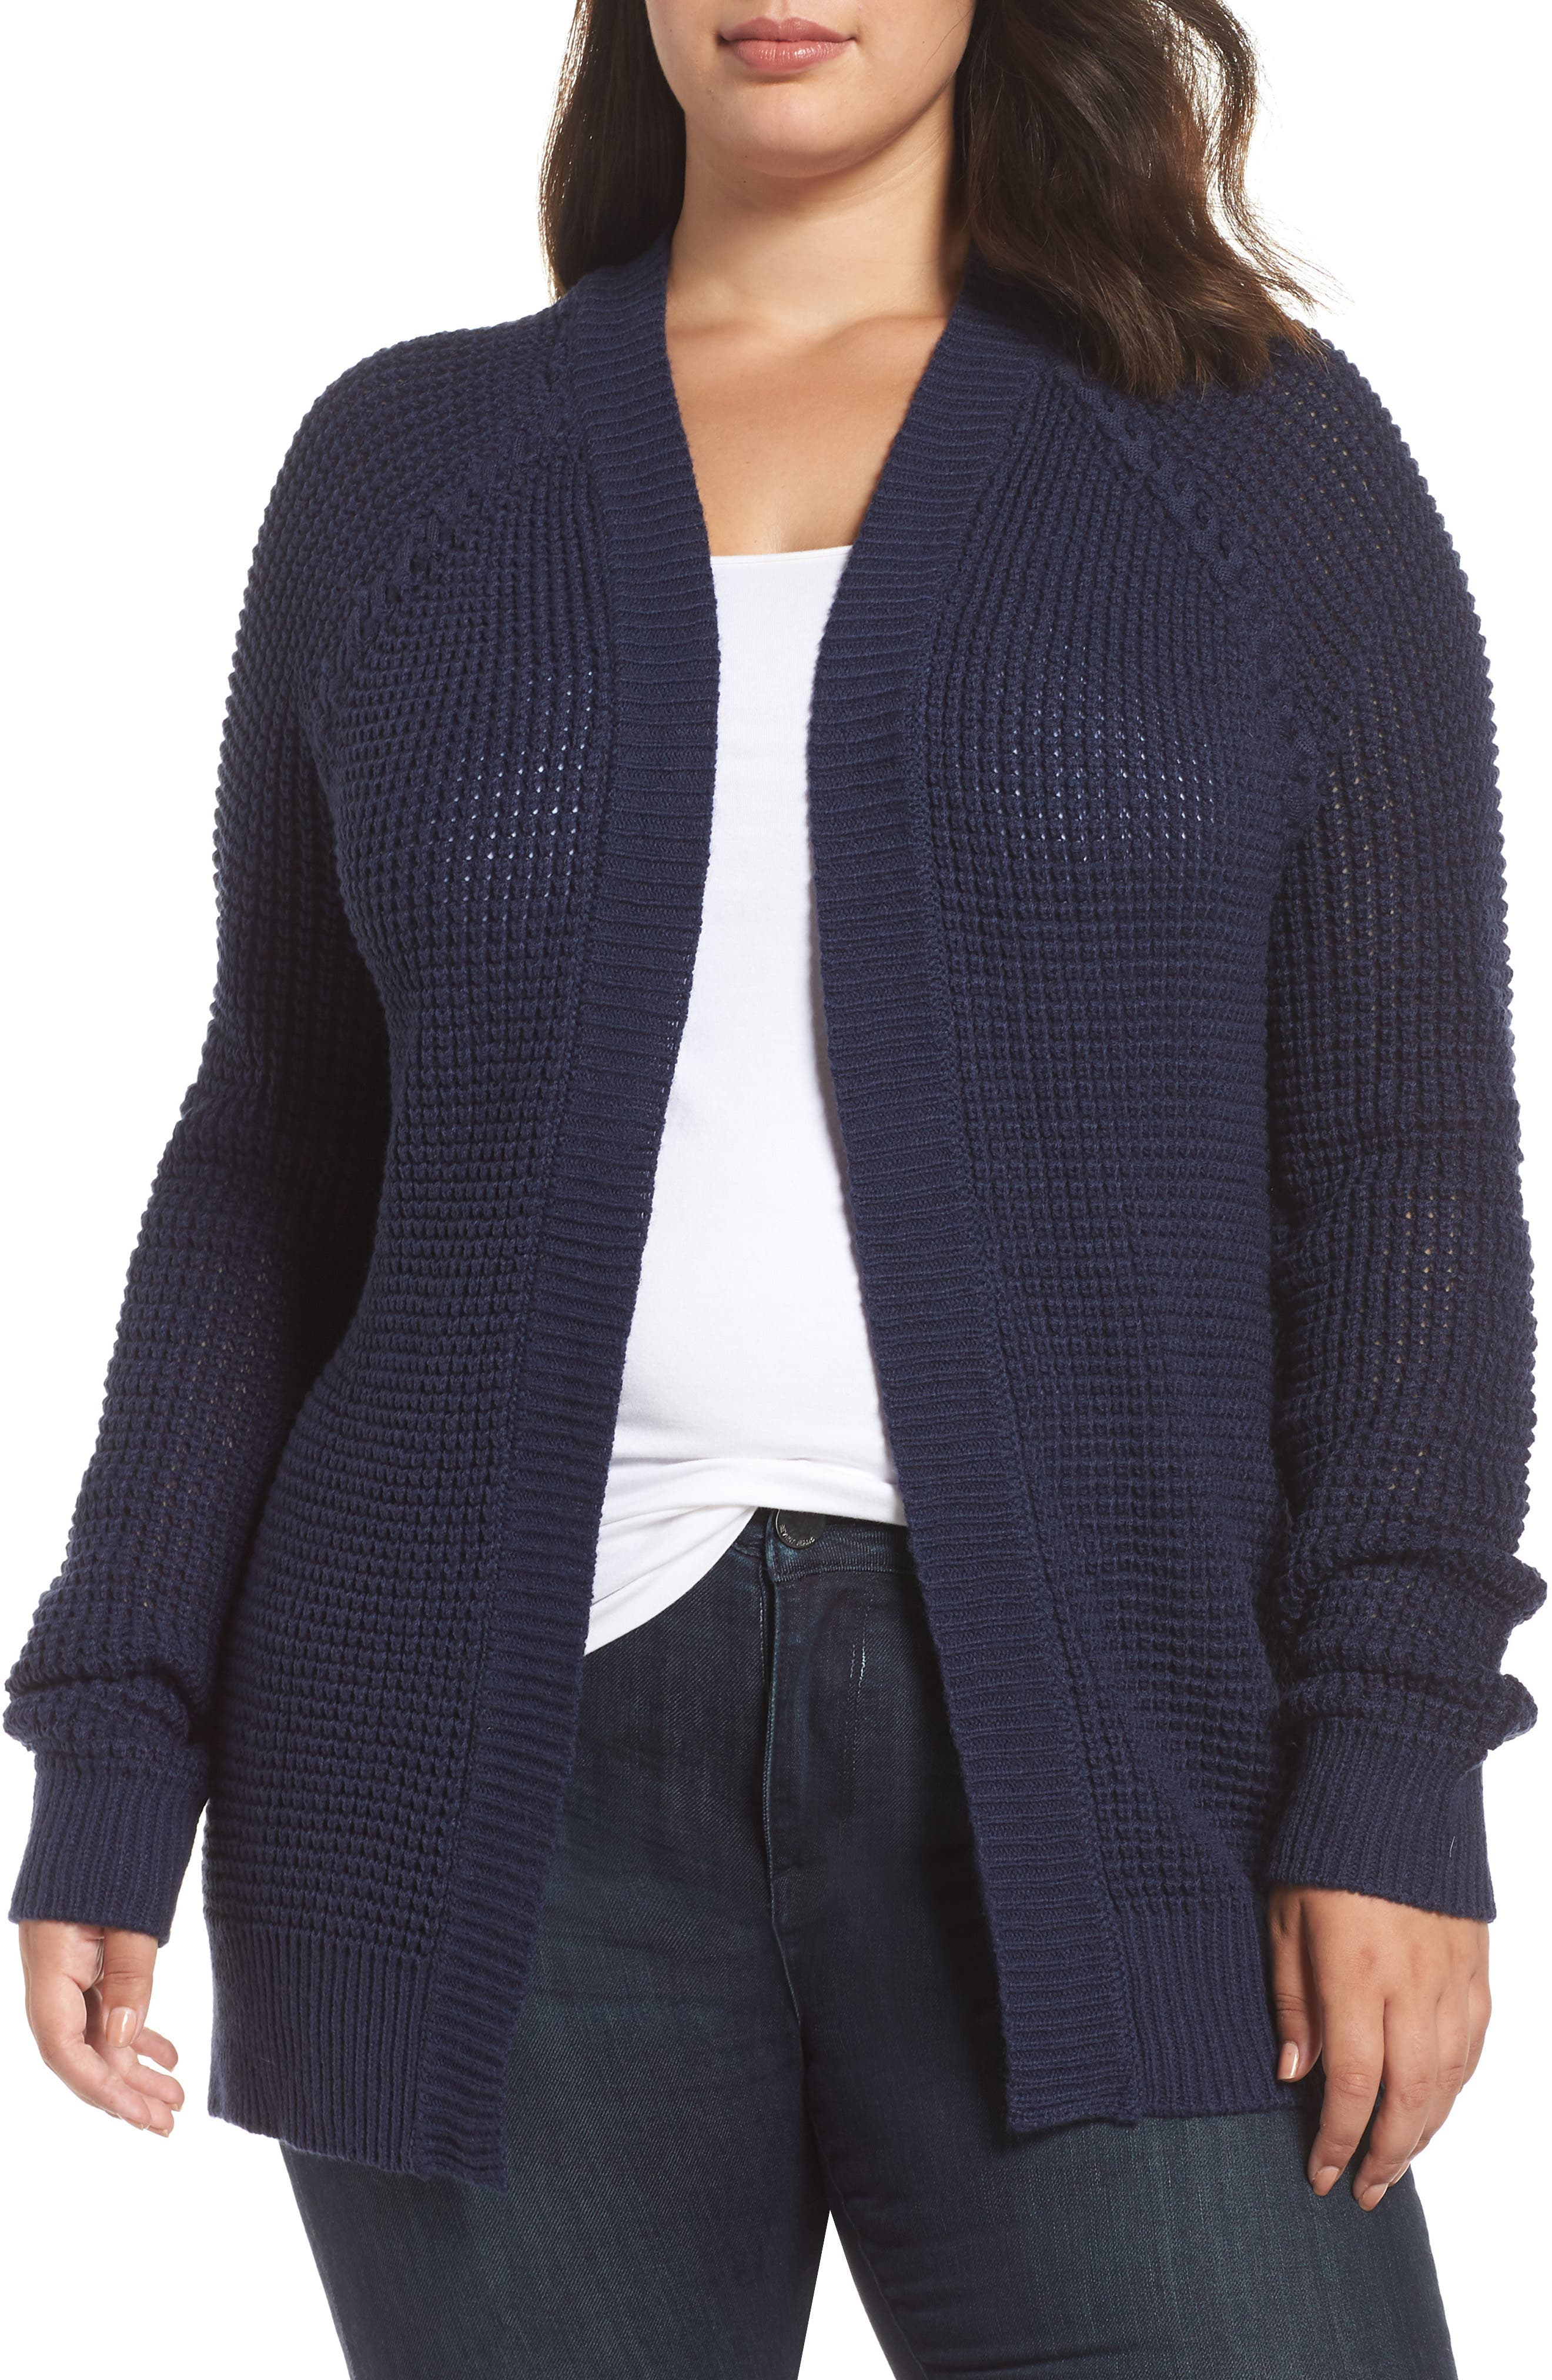 Braided Shoulder Cardigan,                             Main thumbnail 1, color,                             NAVY PEACOAT